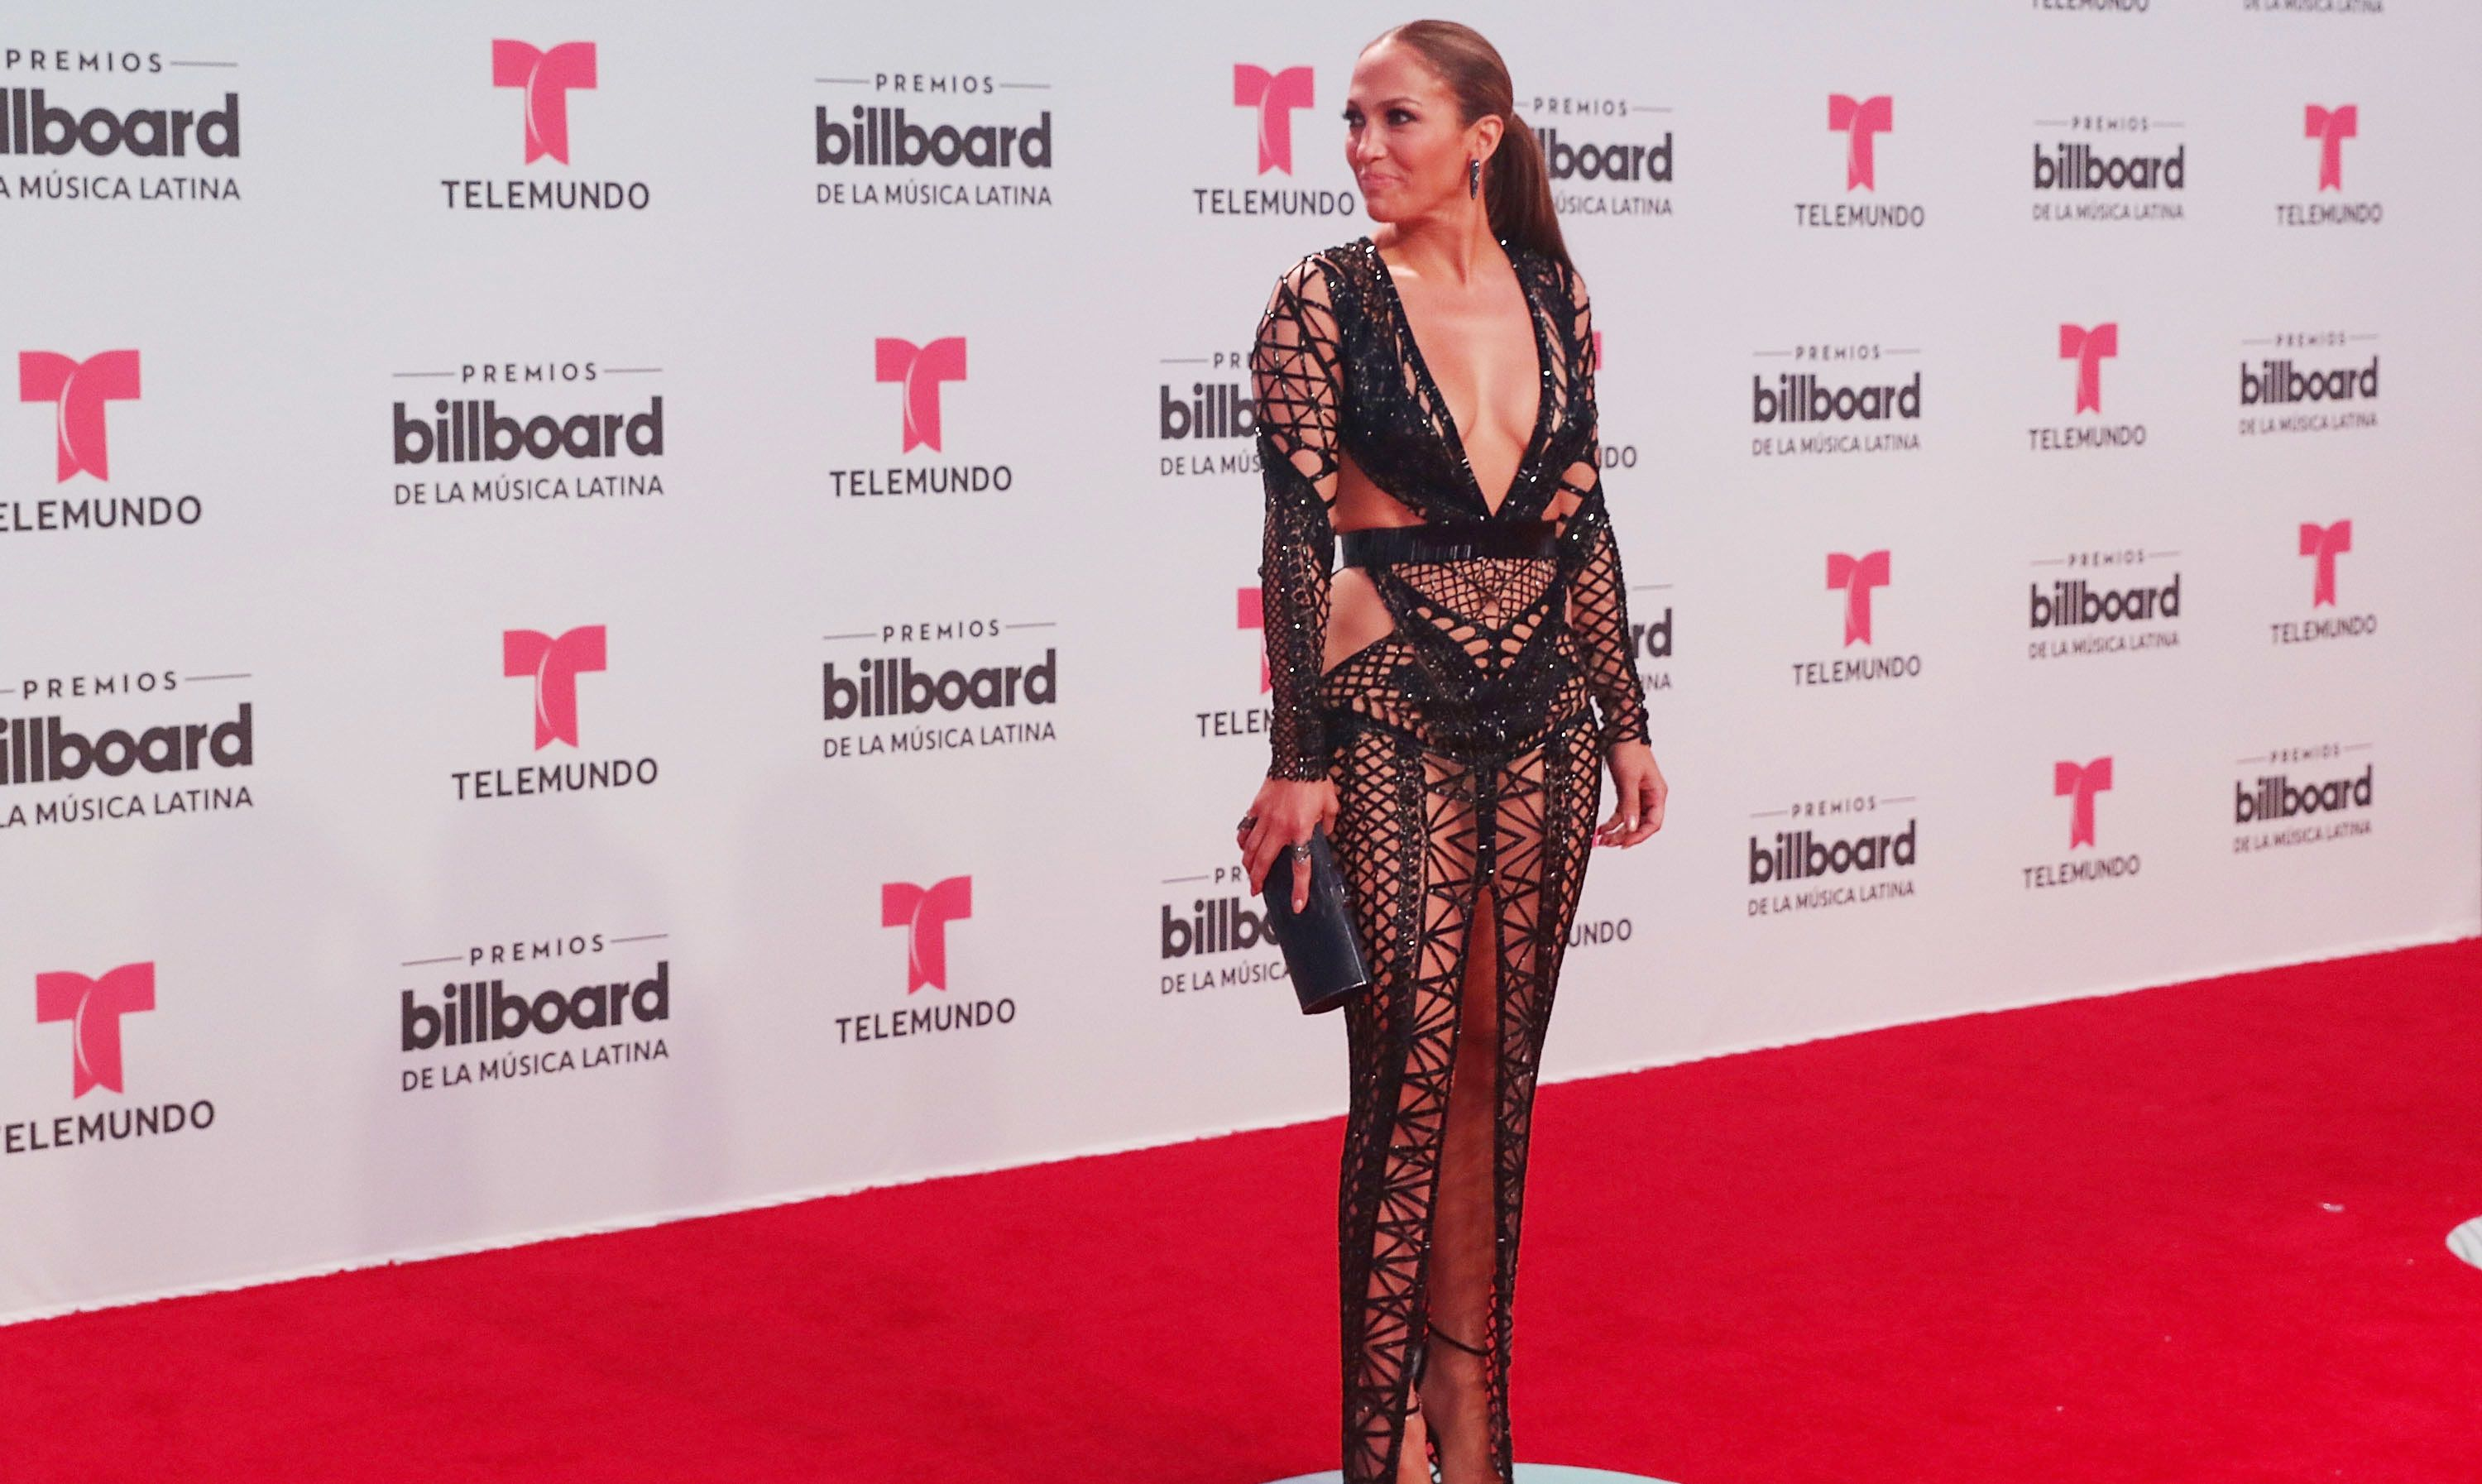 CORAL GABLES, FL - APRIL 27:  Jennifer Lopez attends Billboard Latin Music Awards - Arrivals at Watsco Center on April 27, 2017 in Coral Gables, Florida.  (Photo by Aaron Davidson/FilmMagic)